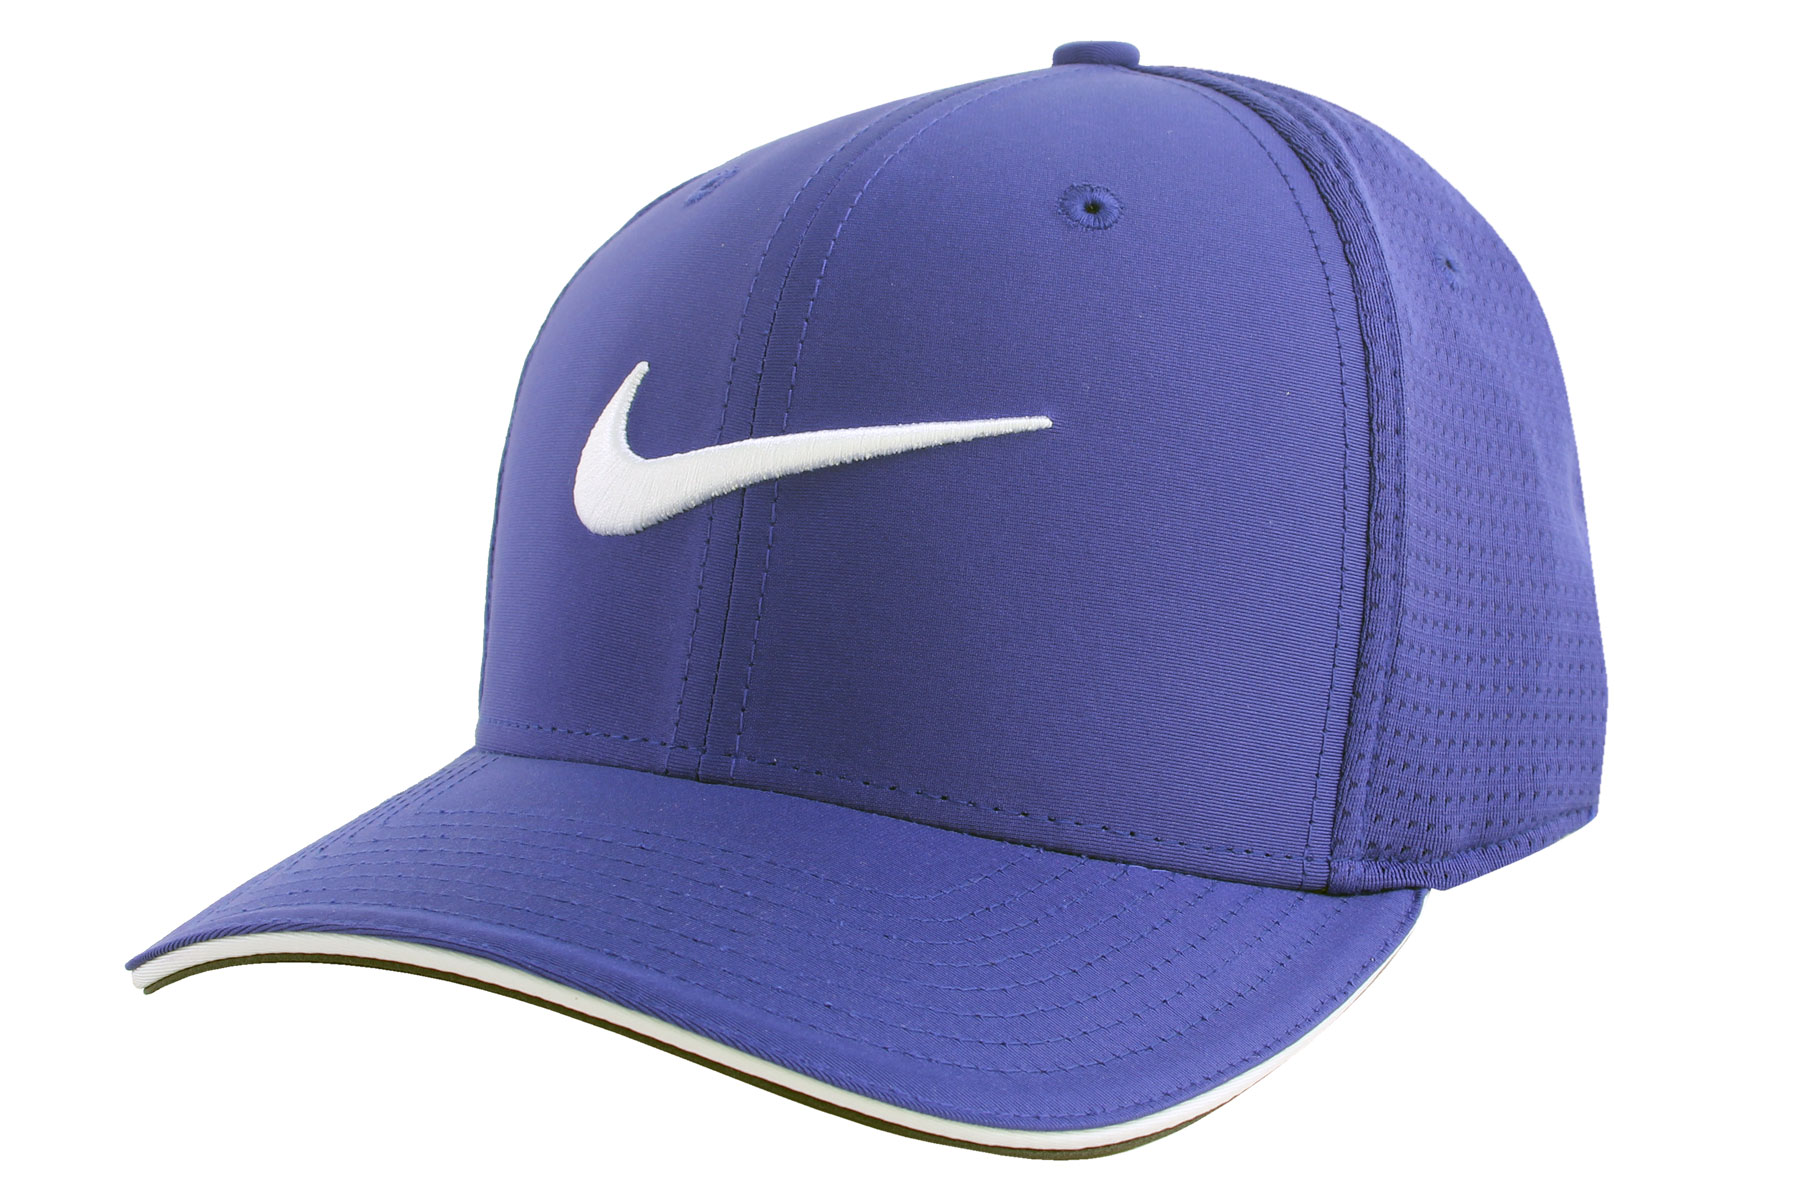 Nike Golf Classic 99 Mesh Cap 313135 on golf cart bags clearance